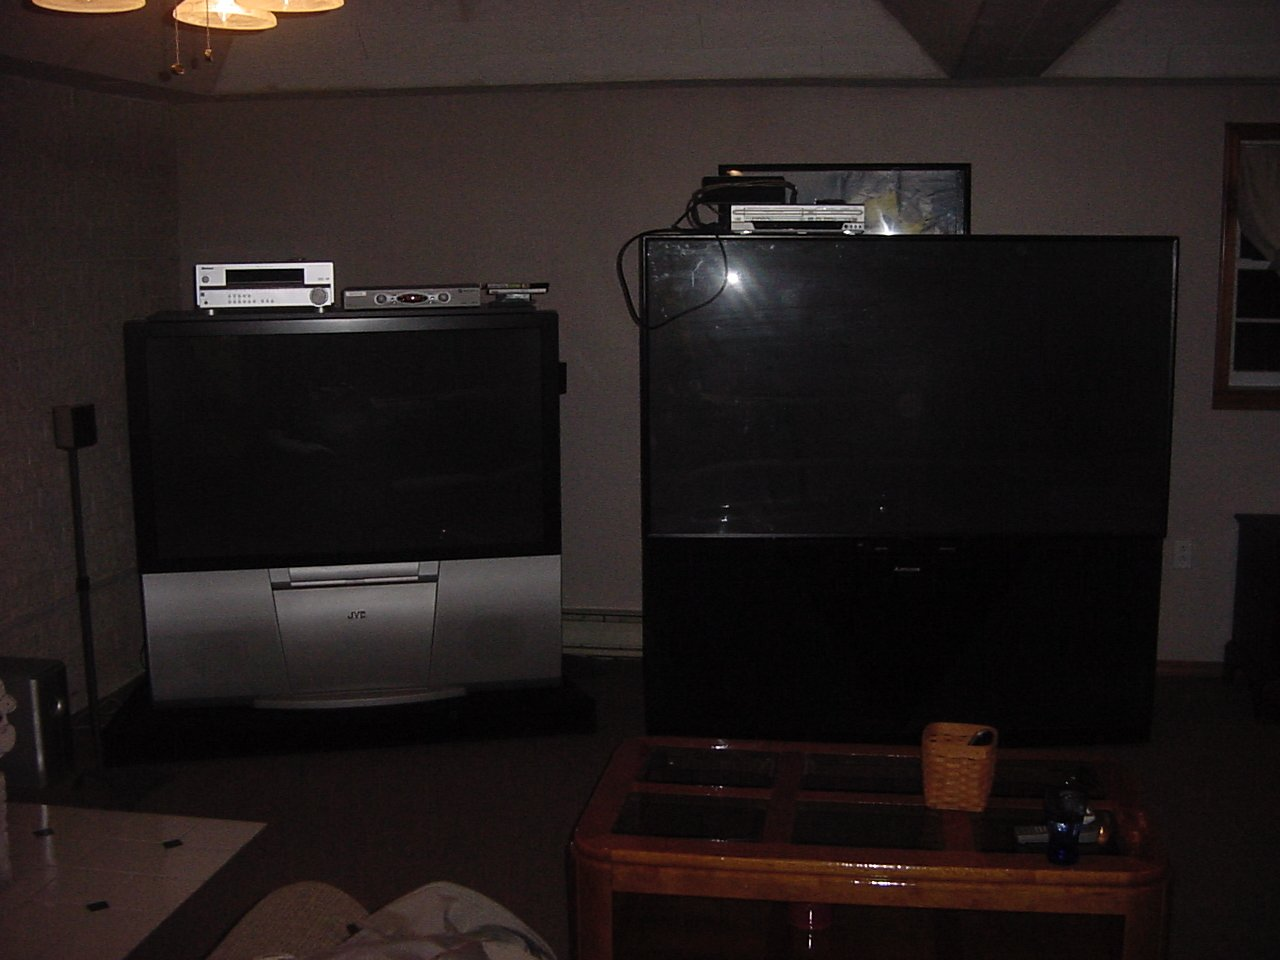 Mitsubishi 80 inch projection TV problems possible repair - AVS Forum |  Home Theater Discussions And Reviews